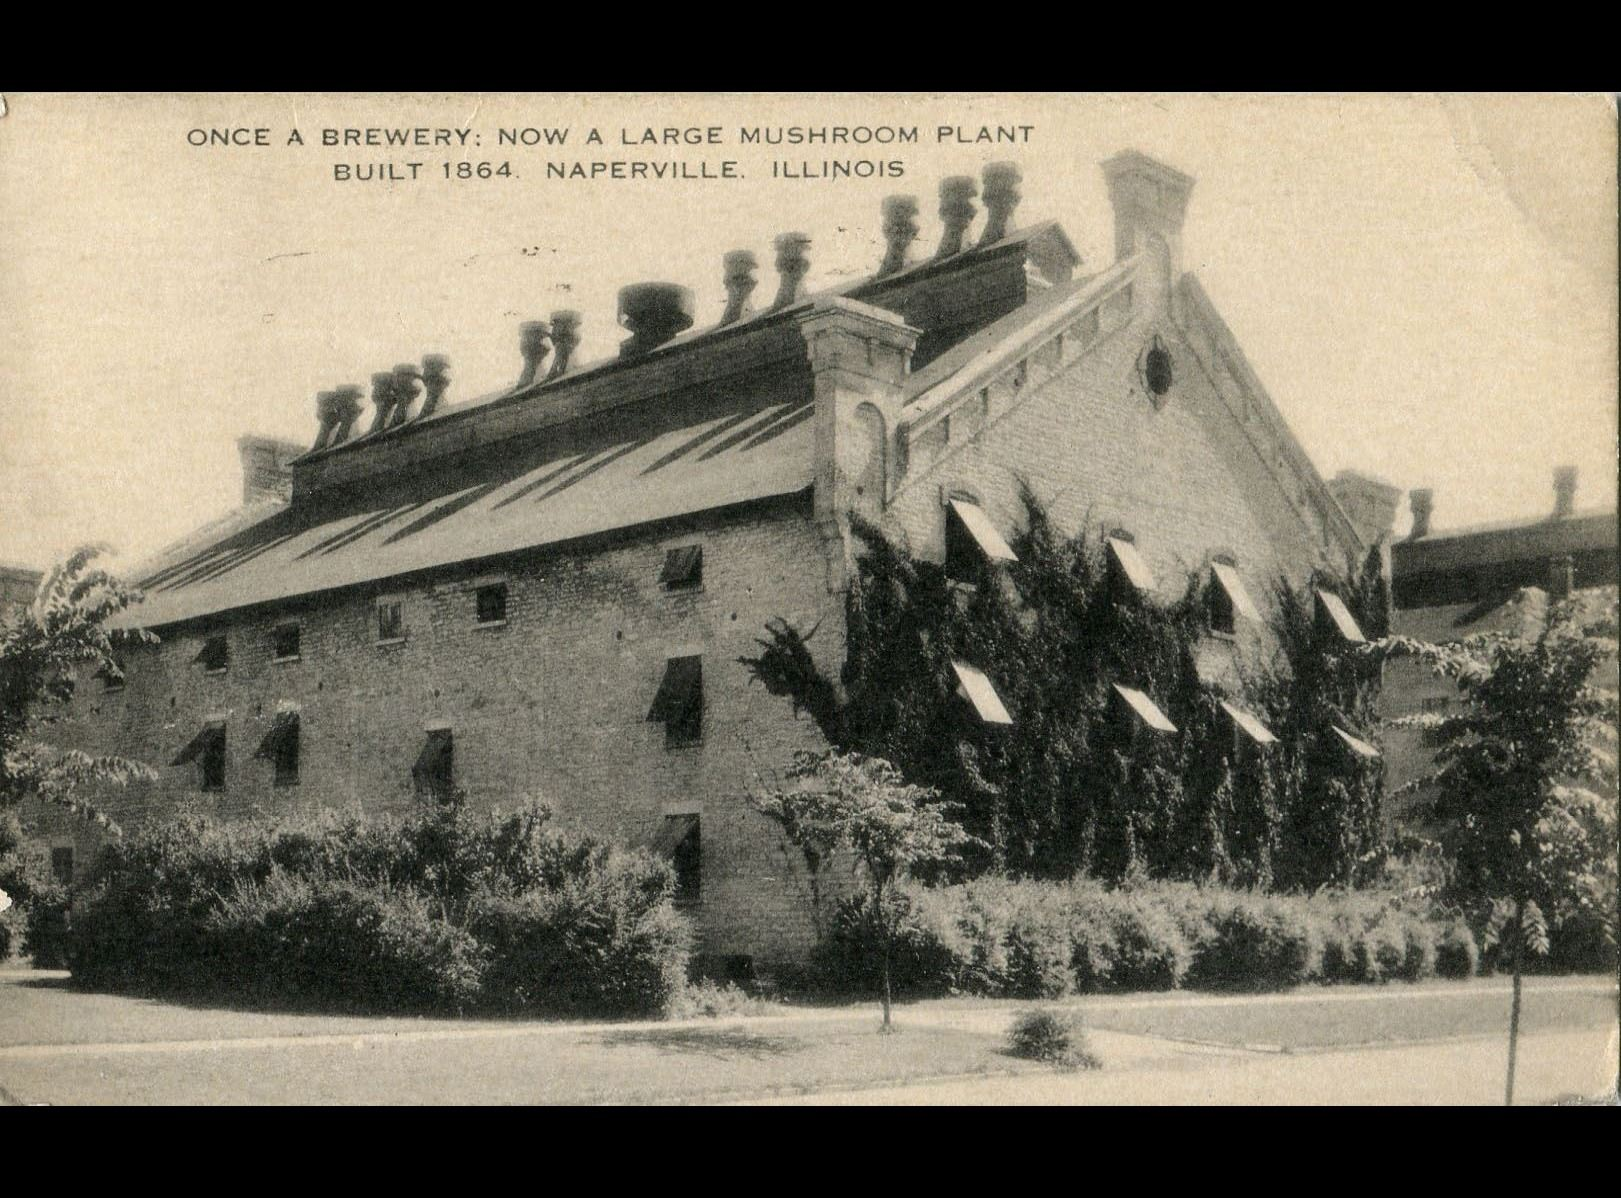 Stenger Brewery building as a mushroom plant, postmarked October 23, 1941